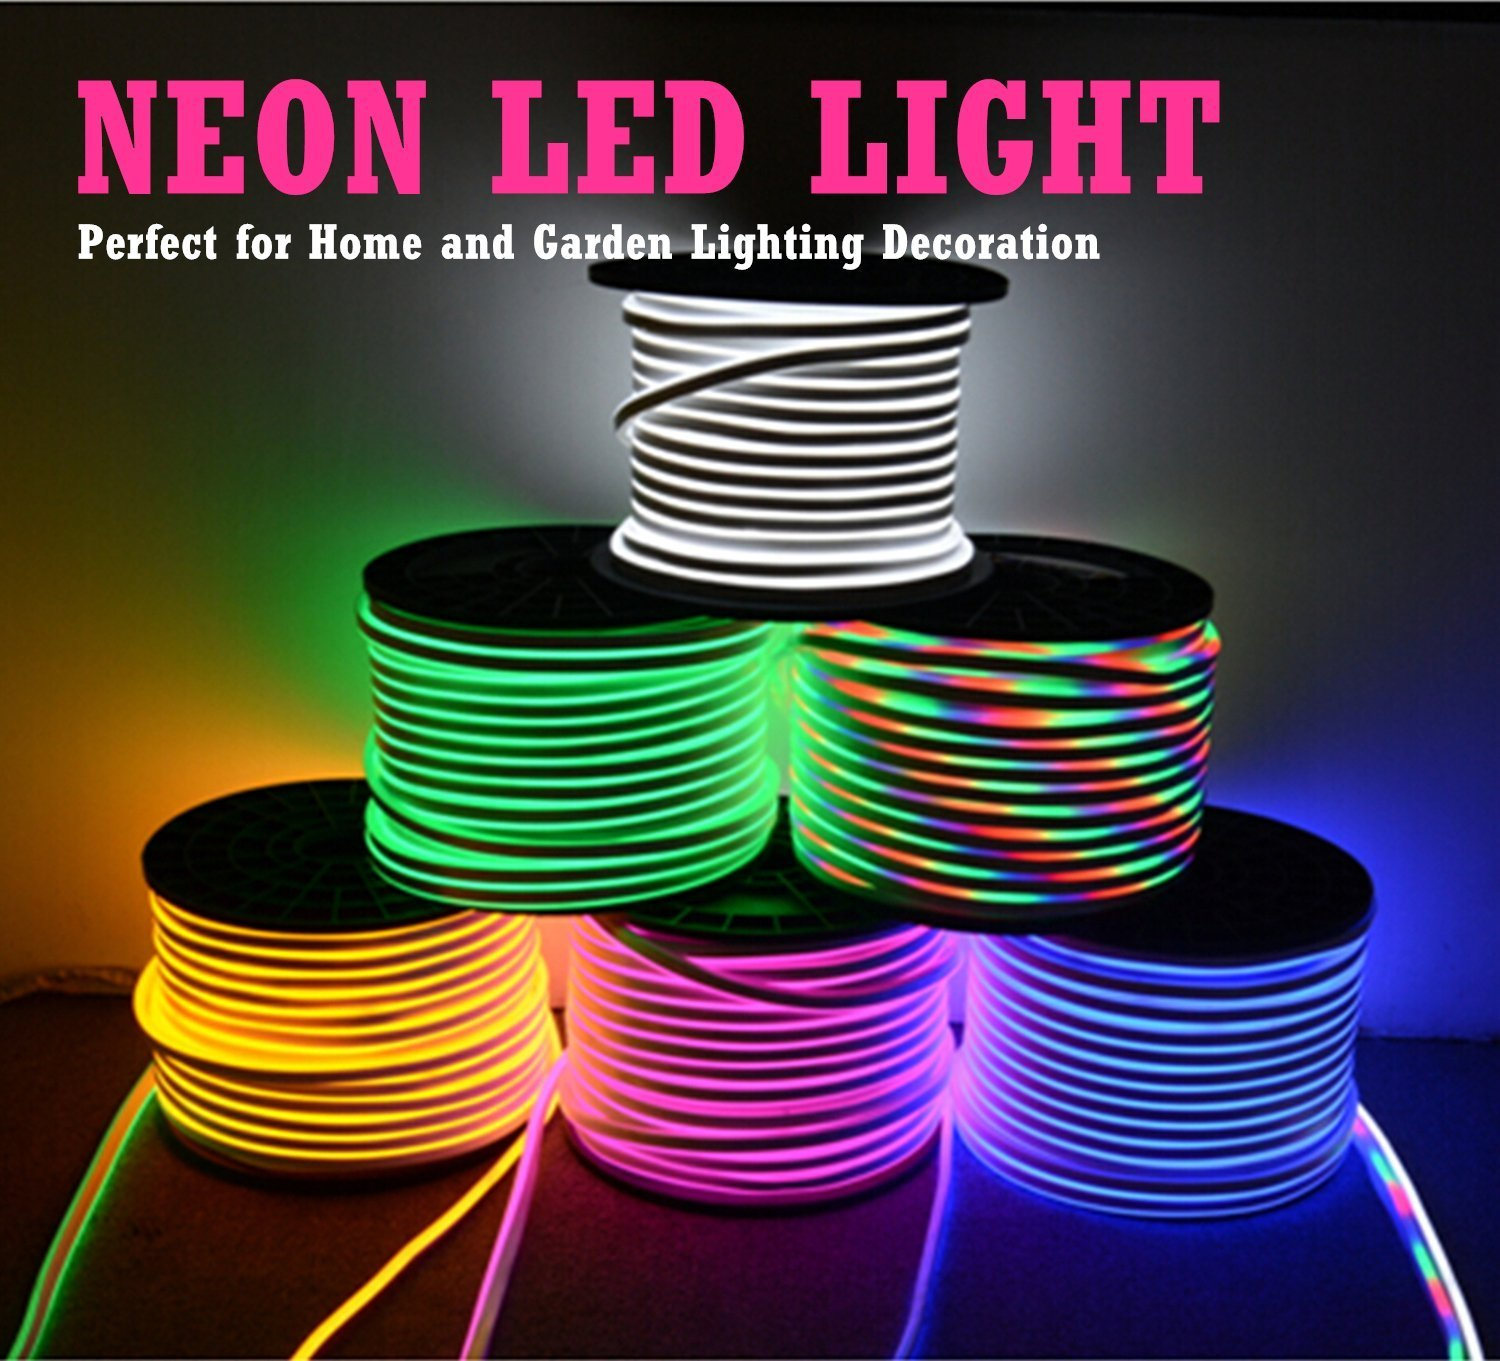 LED NEON LIGHT, IEKOV AC 110-120V Flexible RGB LED Neon Light Strip, 60 LEDs/M, Waterproof, Multi Color Changing 5050 SMD LED Rope Light + Remote Controller for Party Decoration (65.6ft/ 20m) by IEKOV (Image #4)